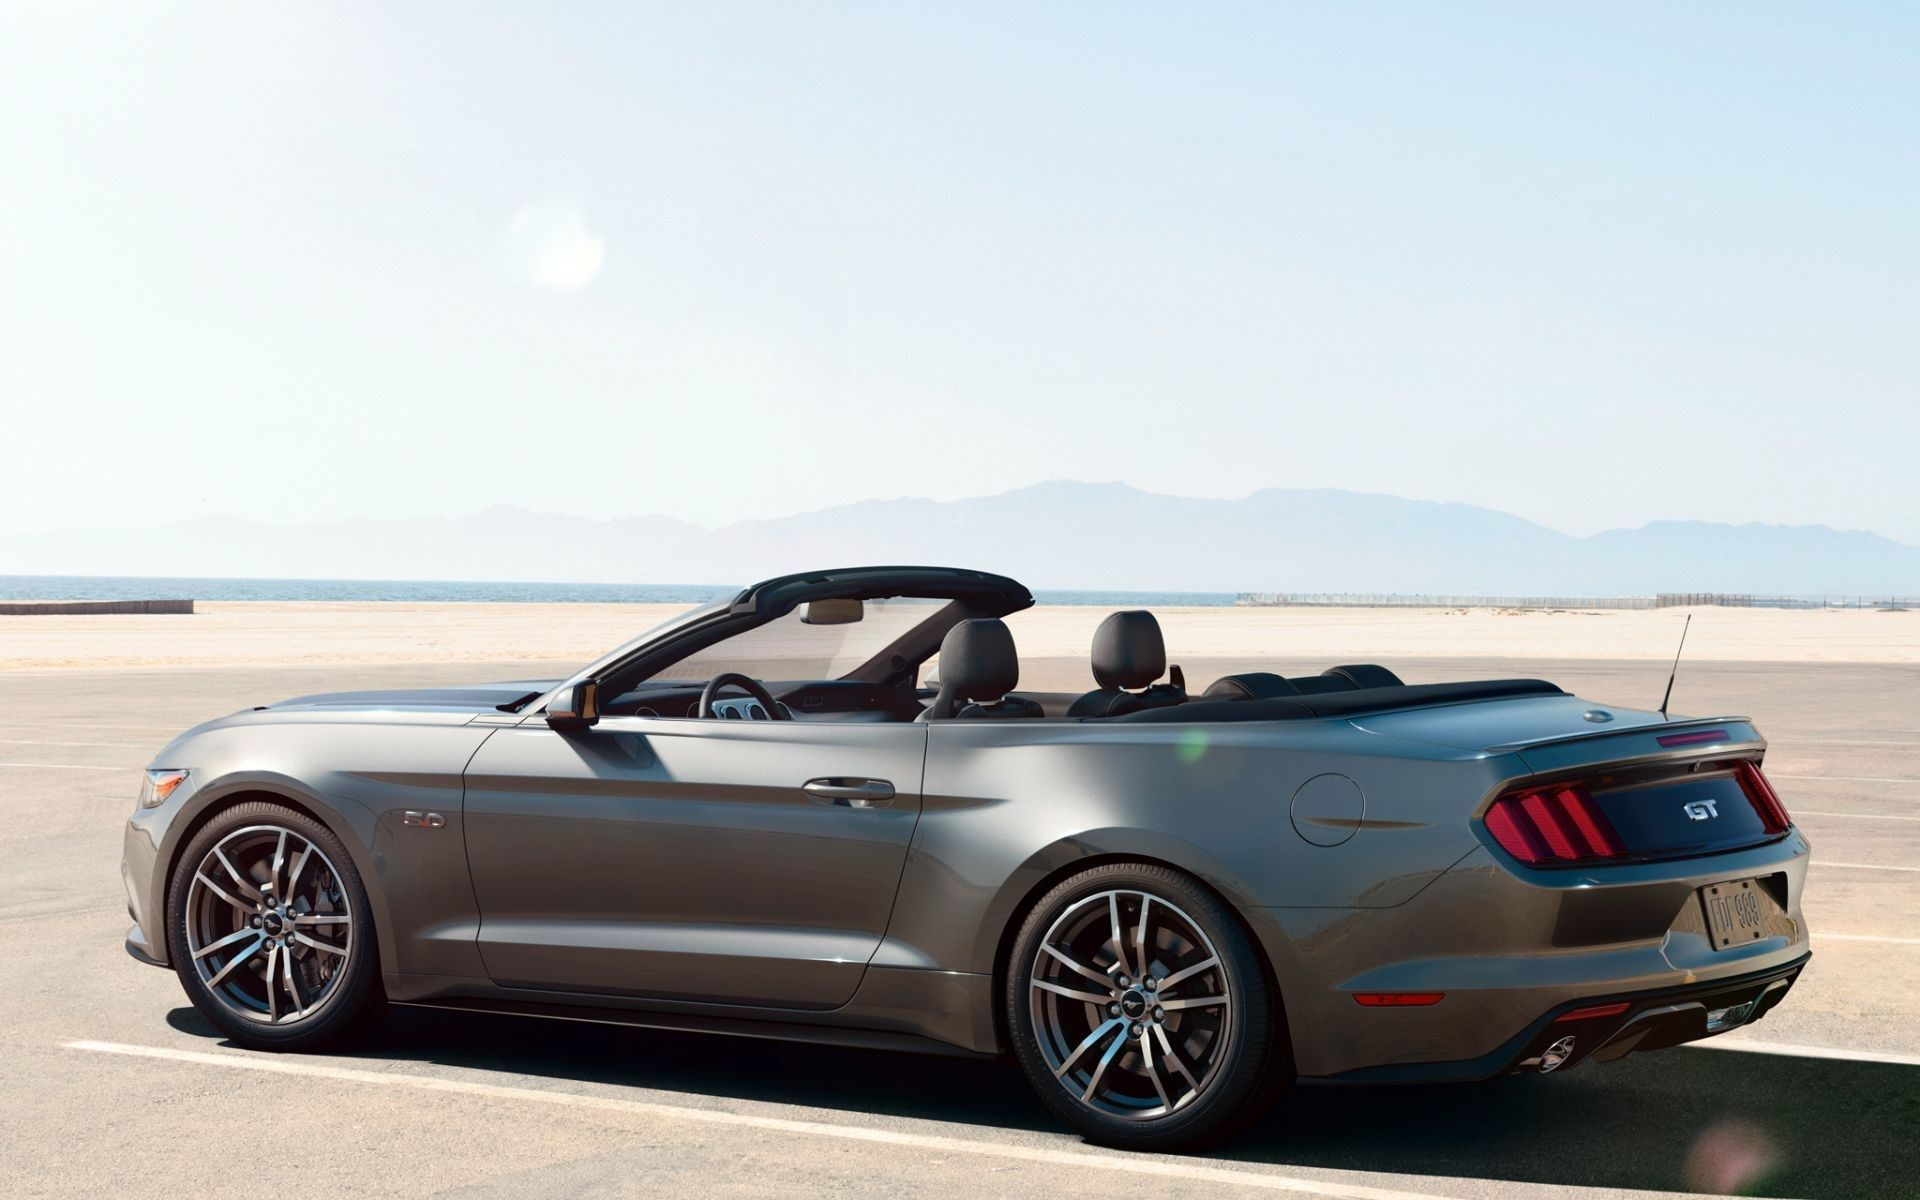 X Px Quality Cool Ford Mustang Gt Image By Doc Sinclair For Pocketfullofgrace Com